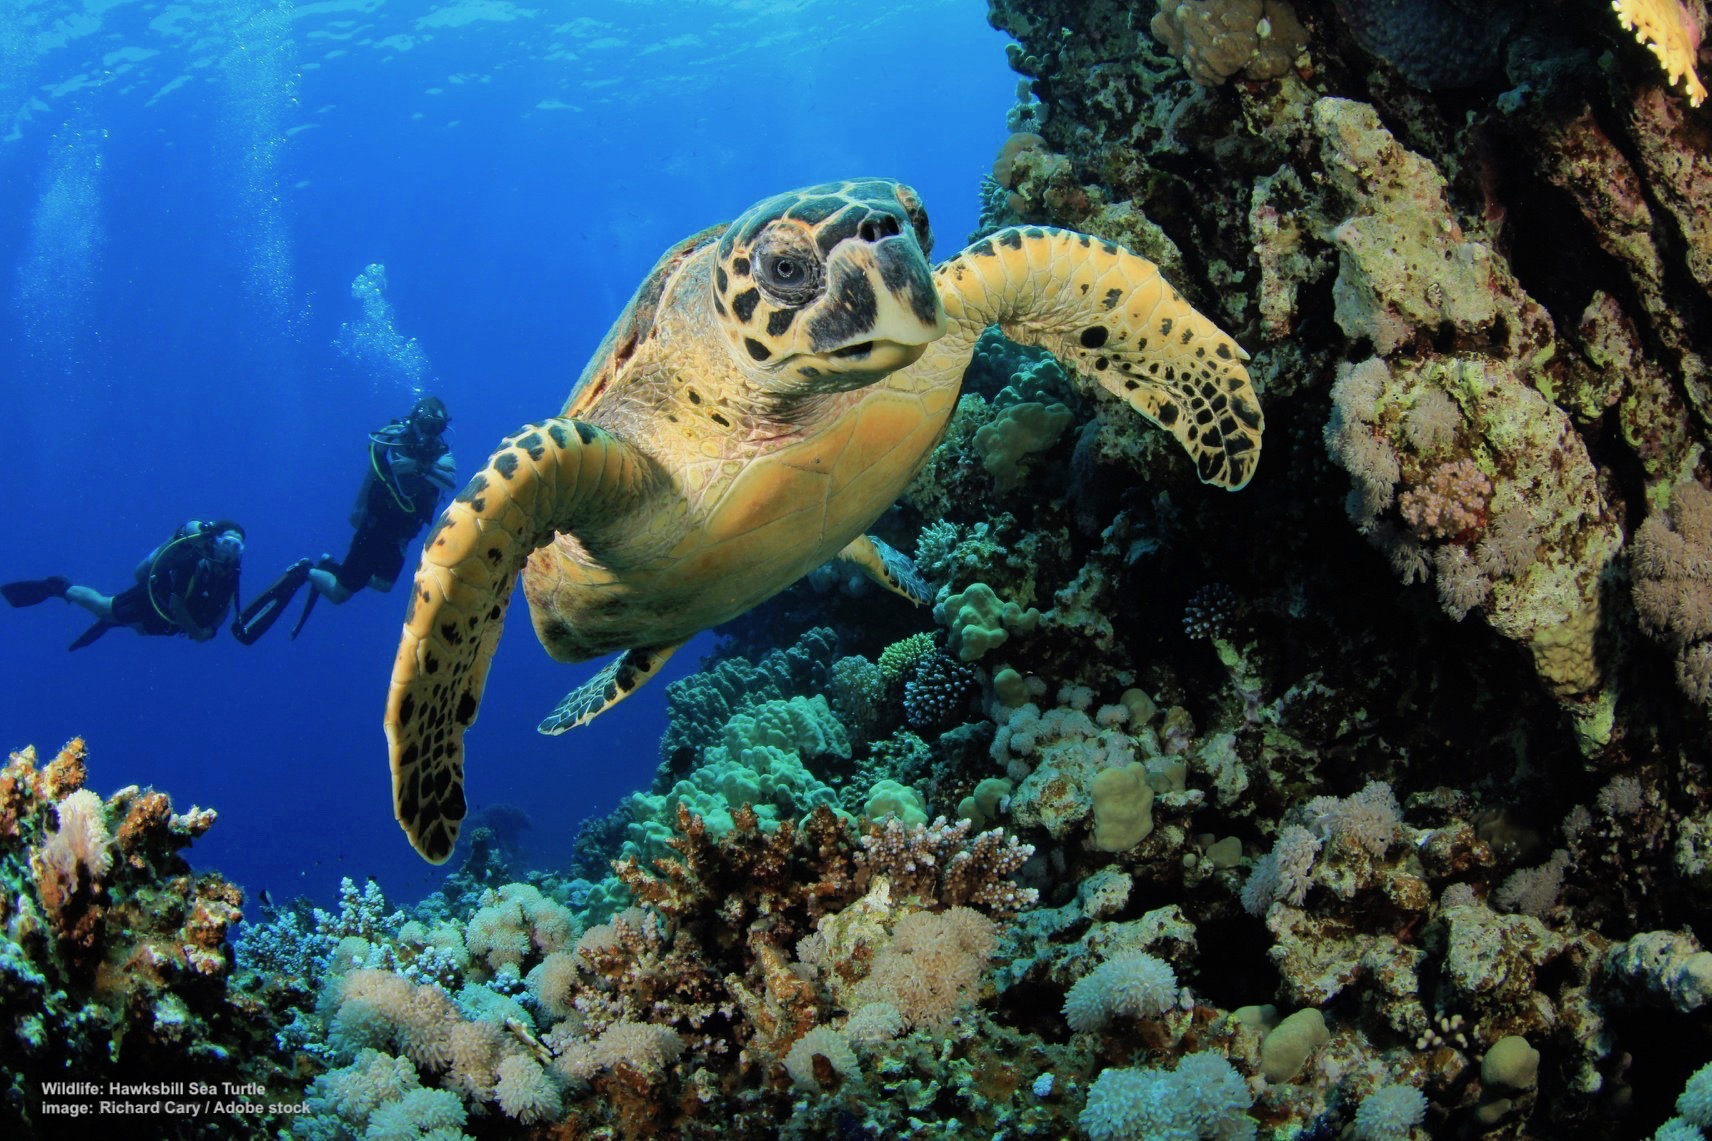 Saving Sea Turtles with SEE Turtles